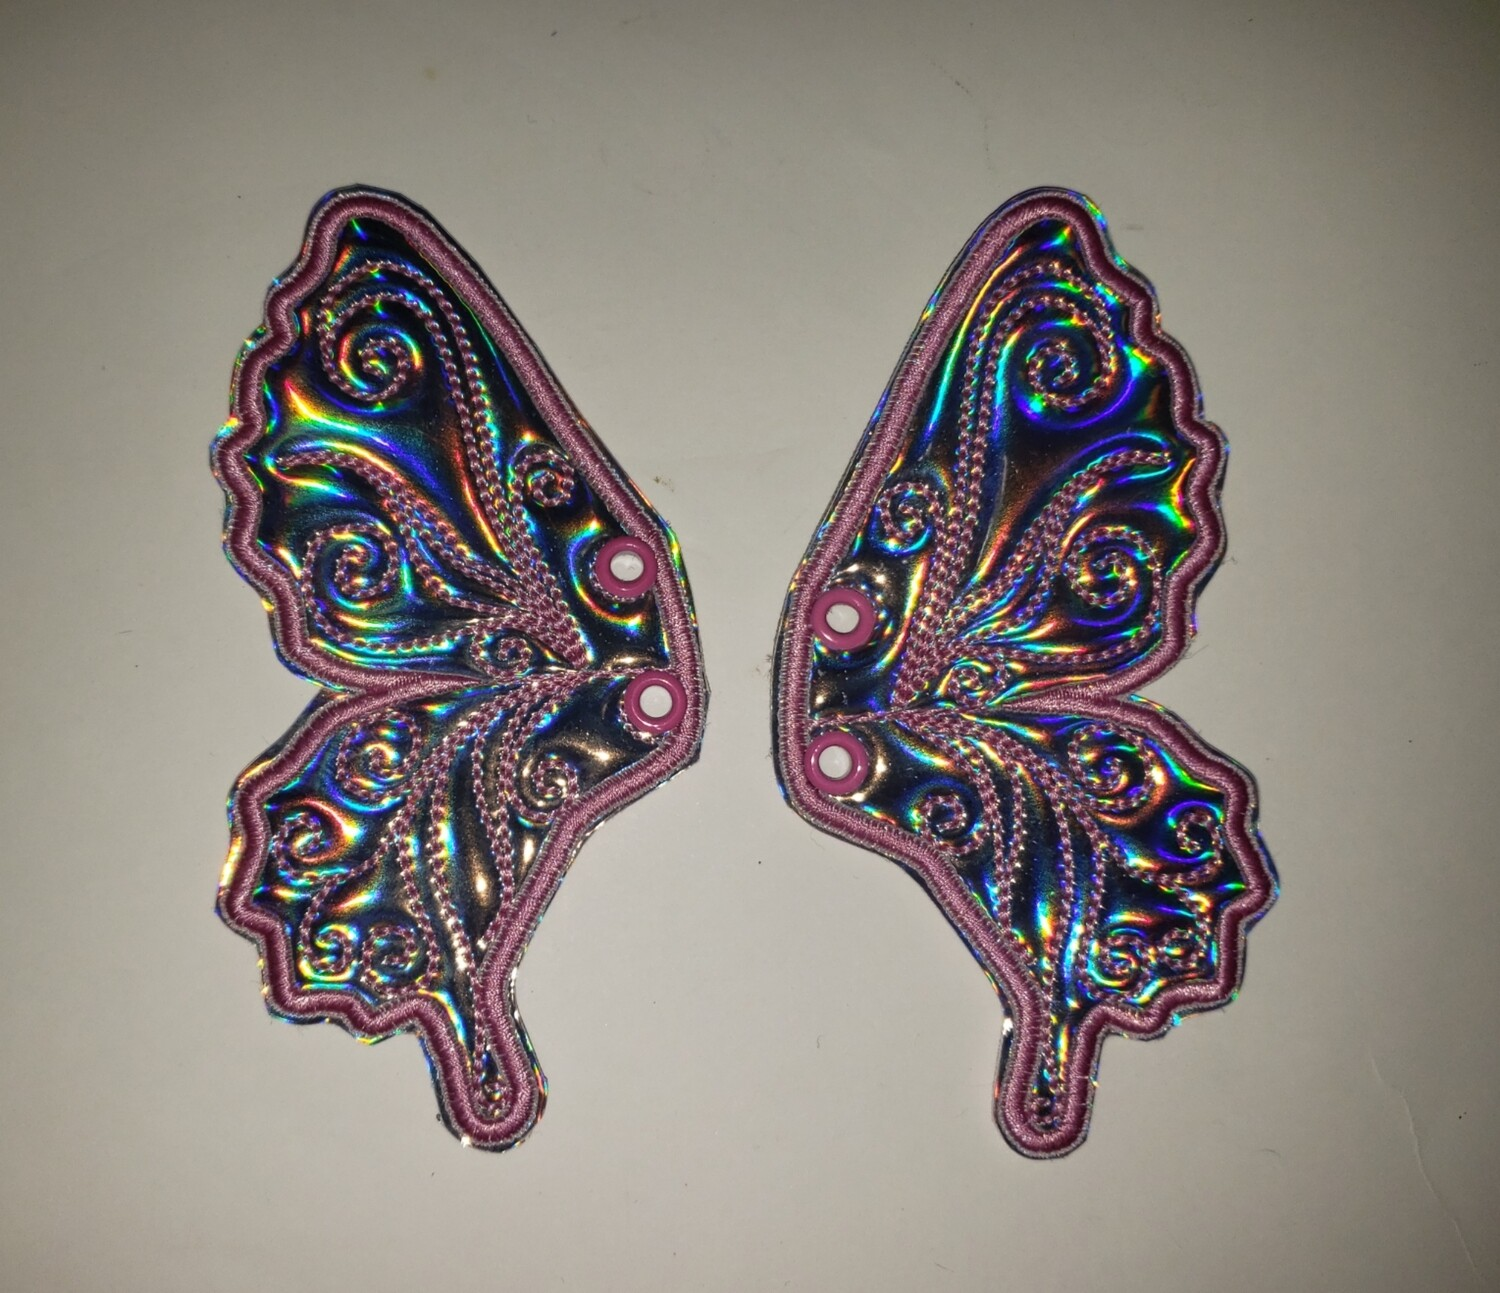 Butterfly 5 inch shoe wings in  holographic fabrics